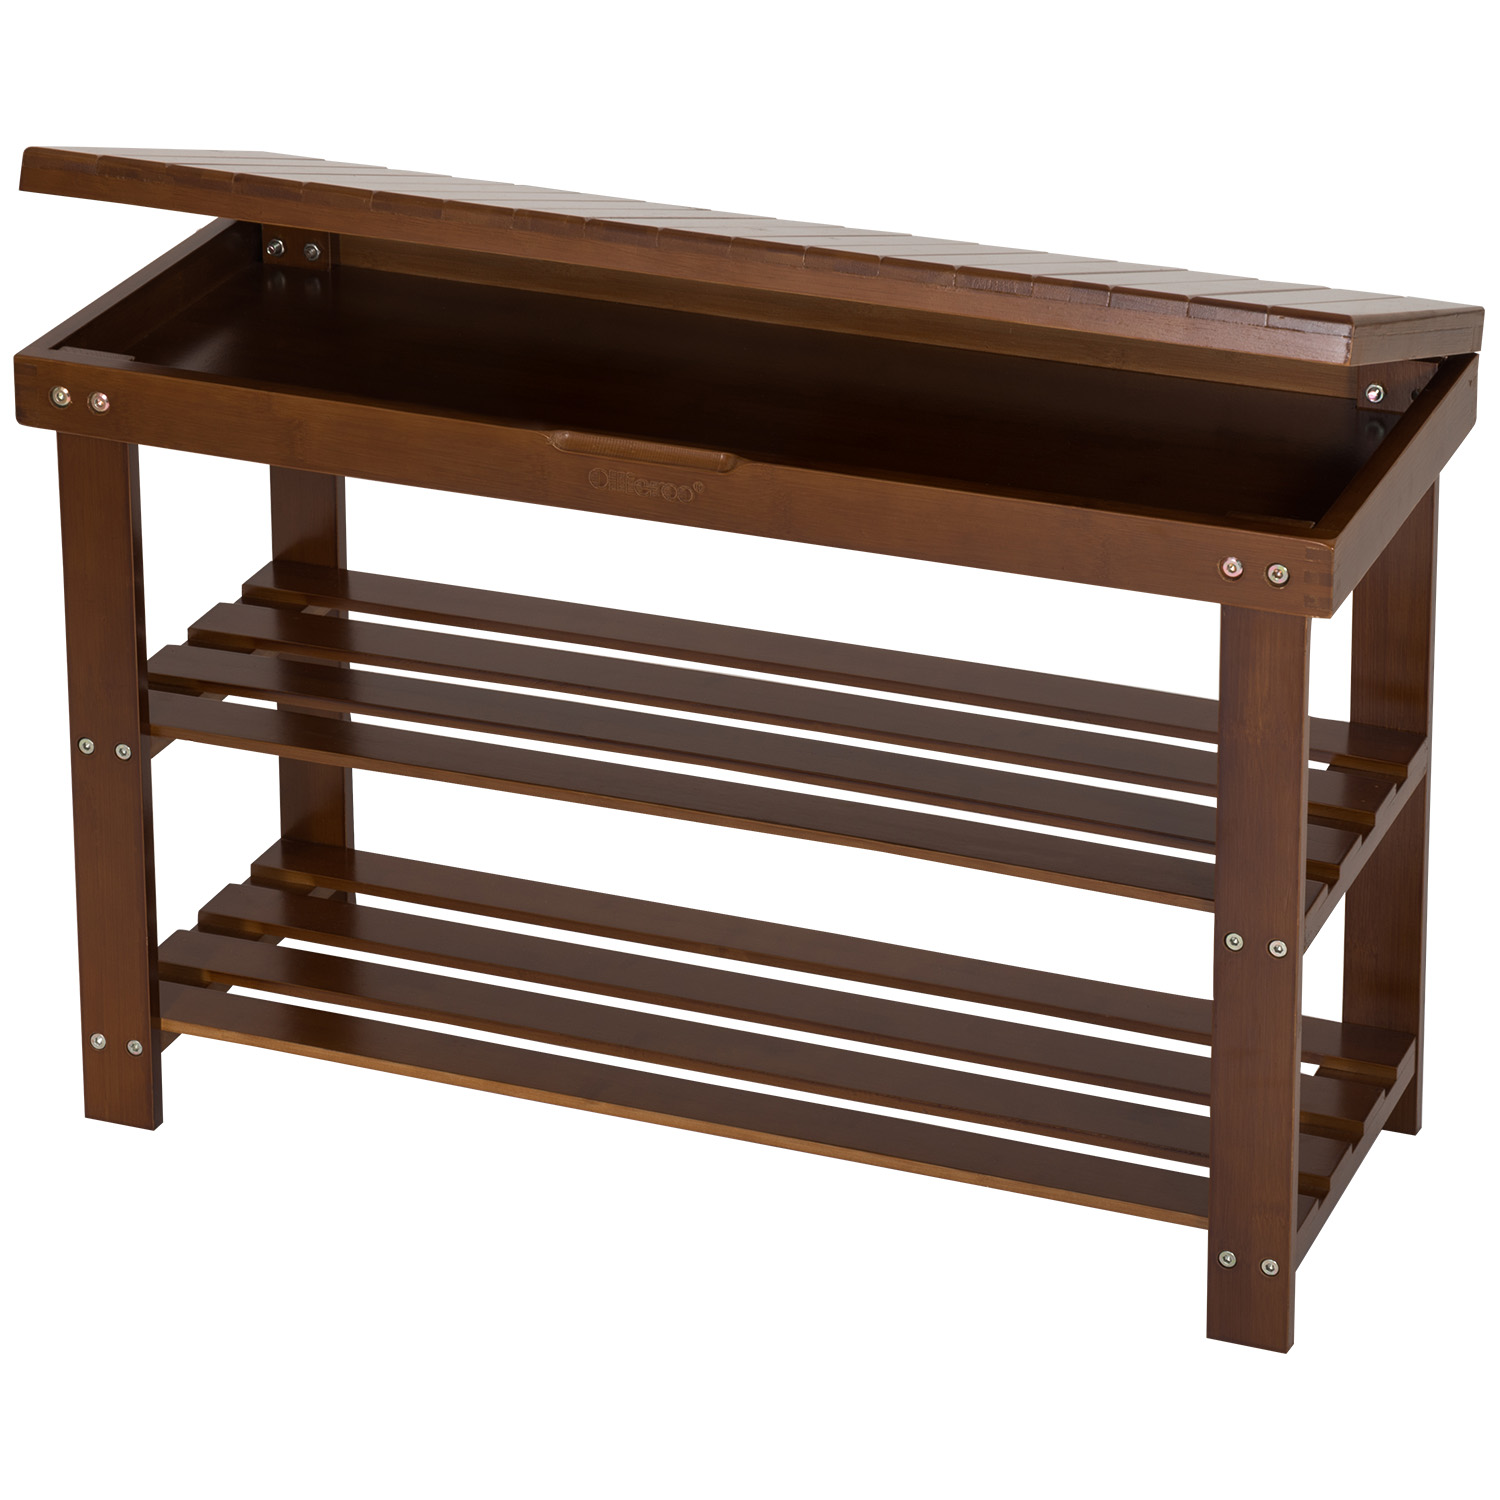 Ollieroo Shoe Rack 2 Tier Natural Bamboo Shoe Bench Organizer, Foot Stool Storage Drawer on Top (Amber)